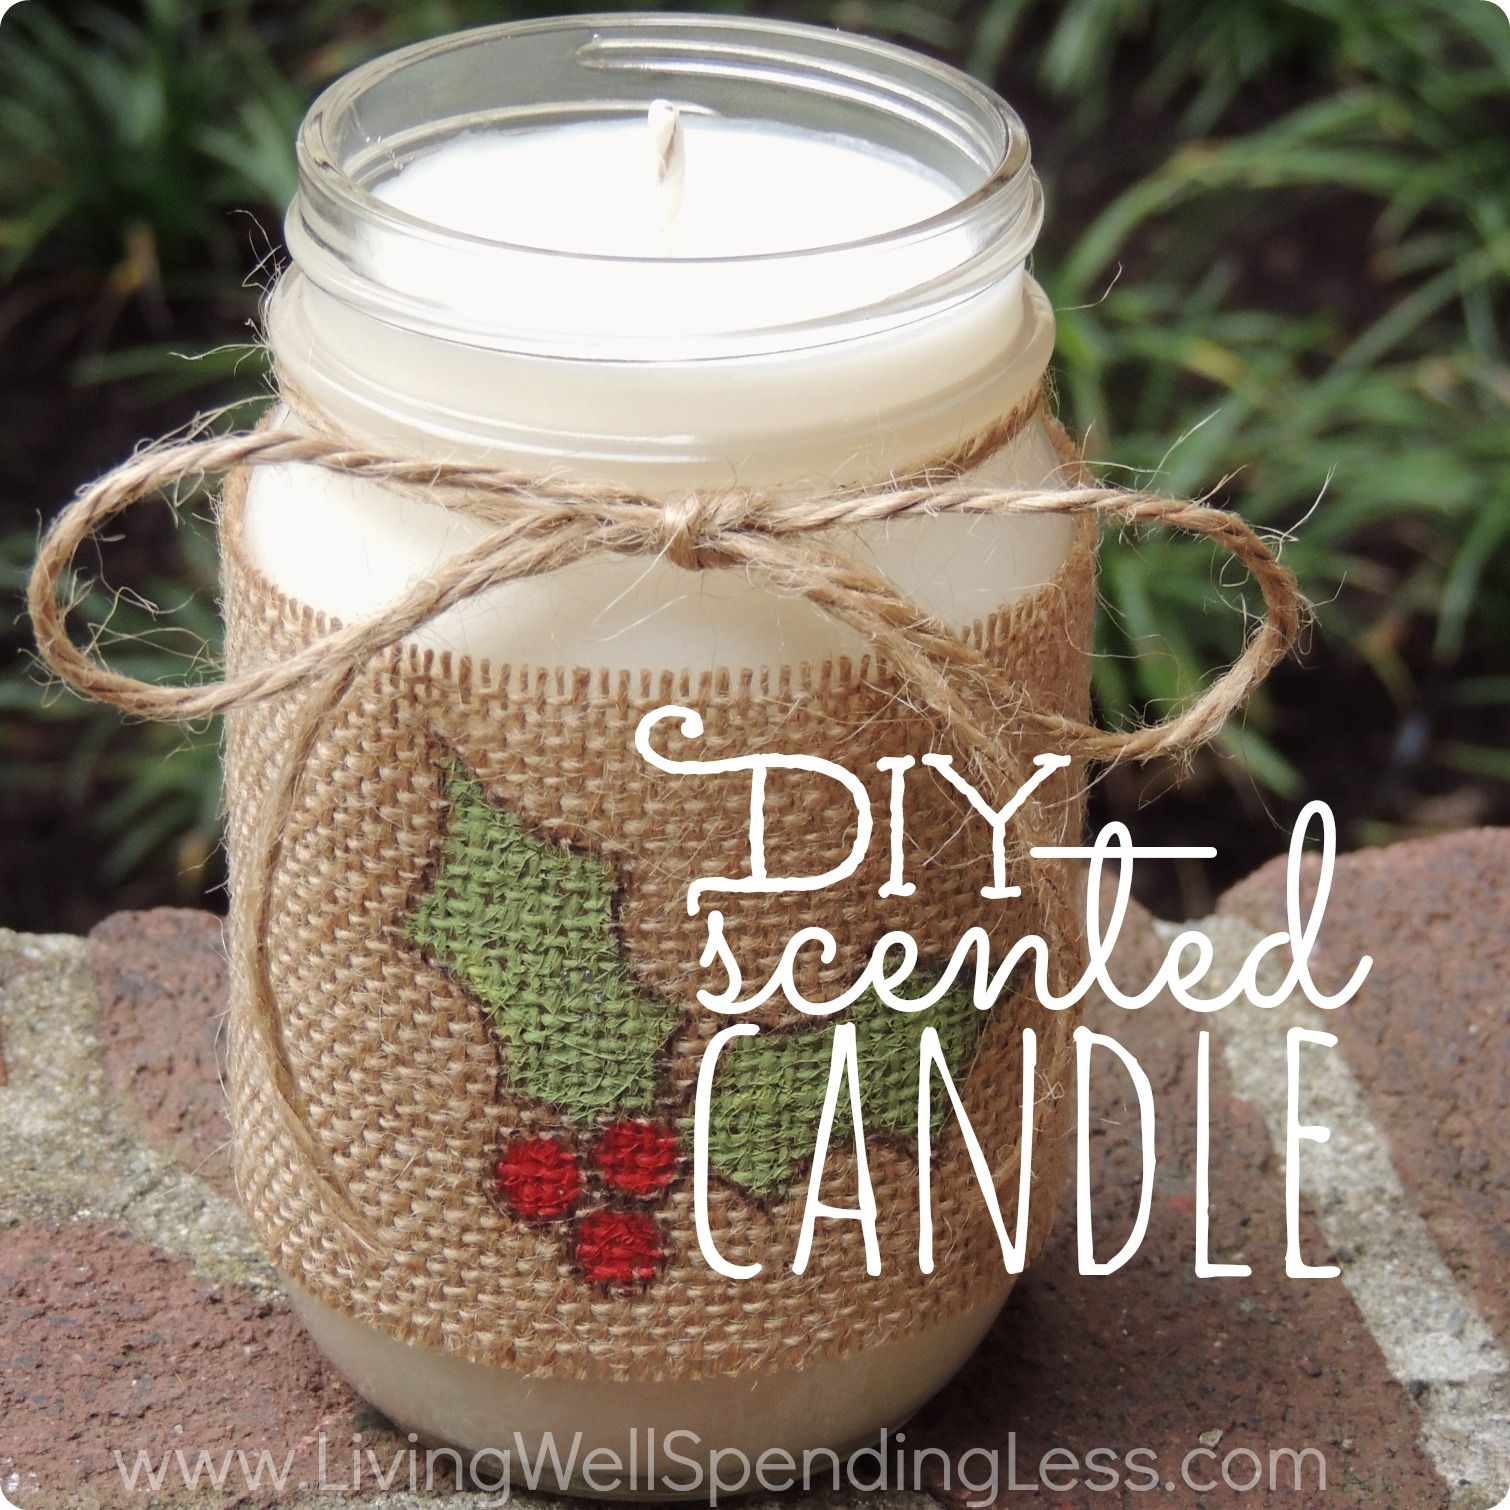 Diy scented candle handmade gifts ideas scented candles for Scents for homemade candles